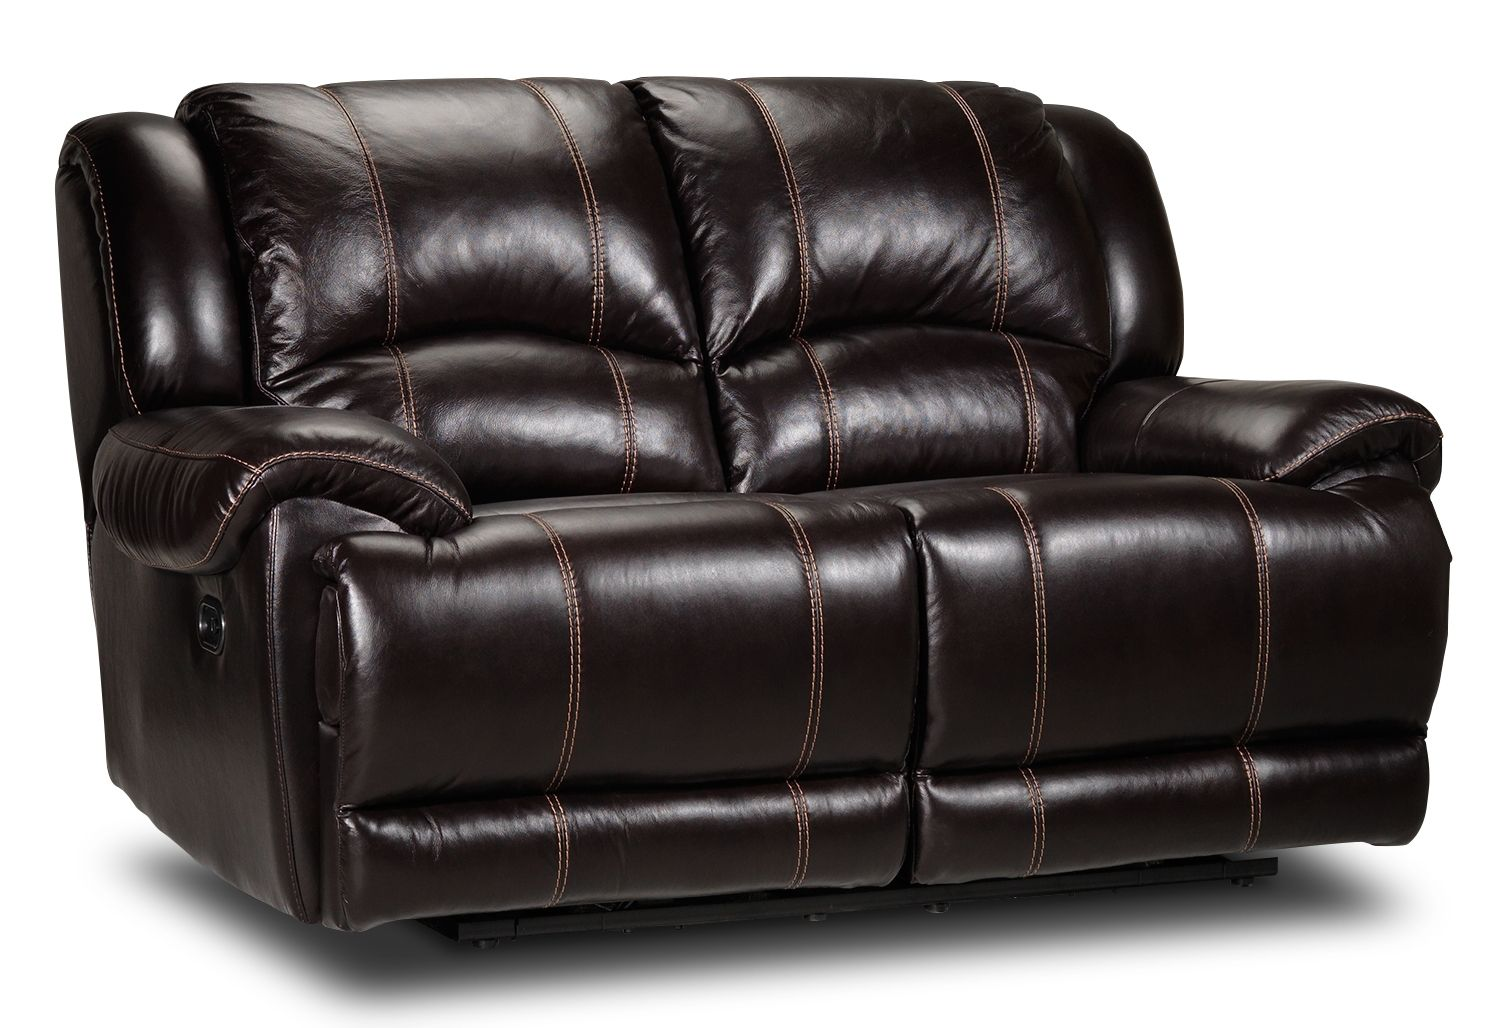 Sinatra Leather Power Reclining Loveseat